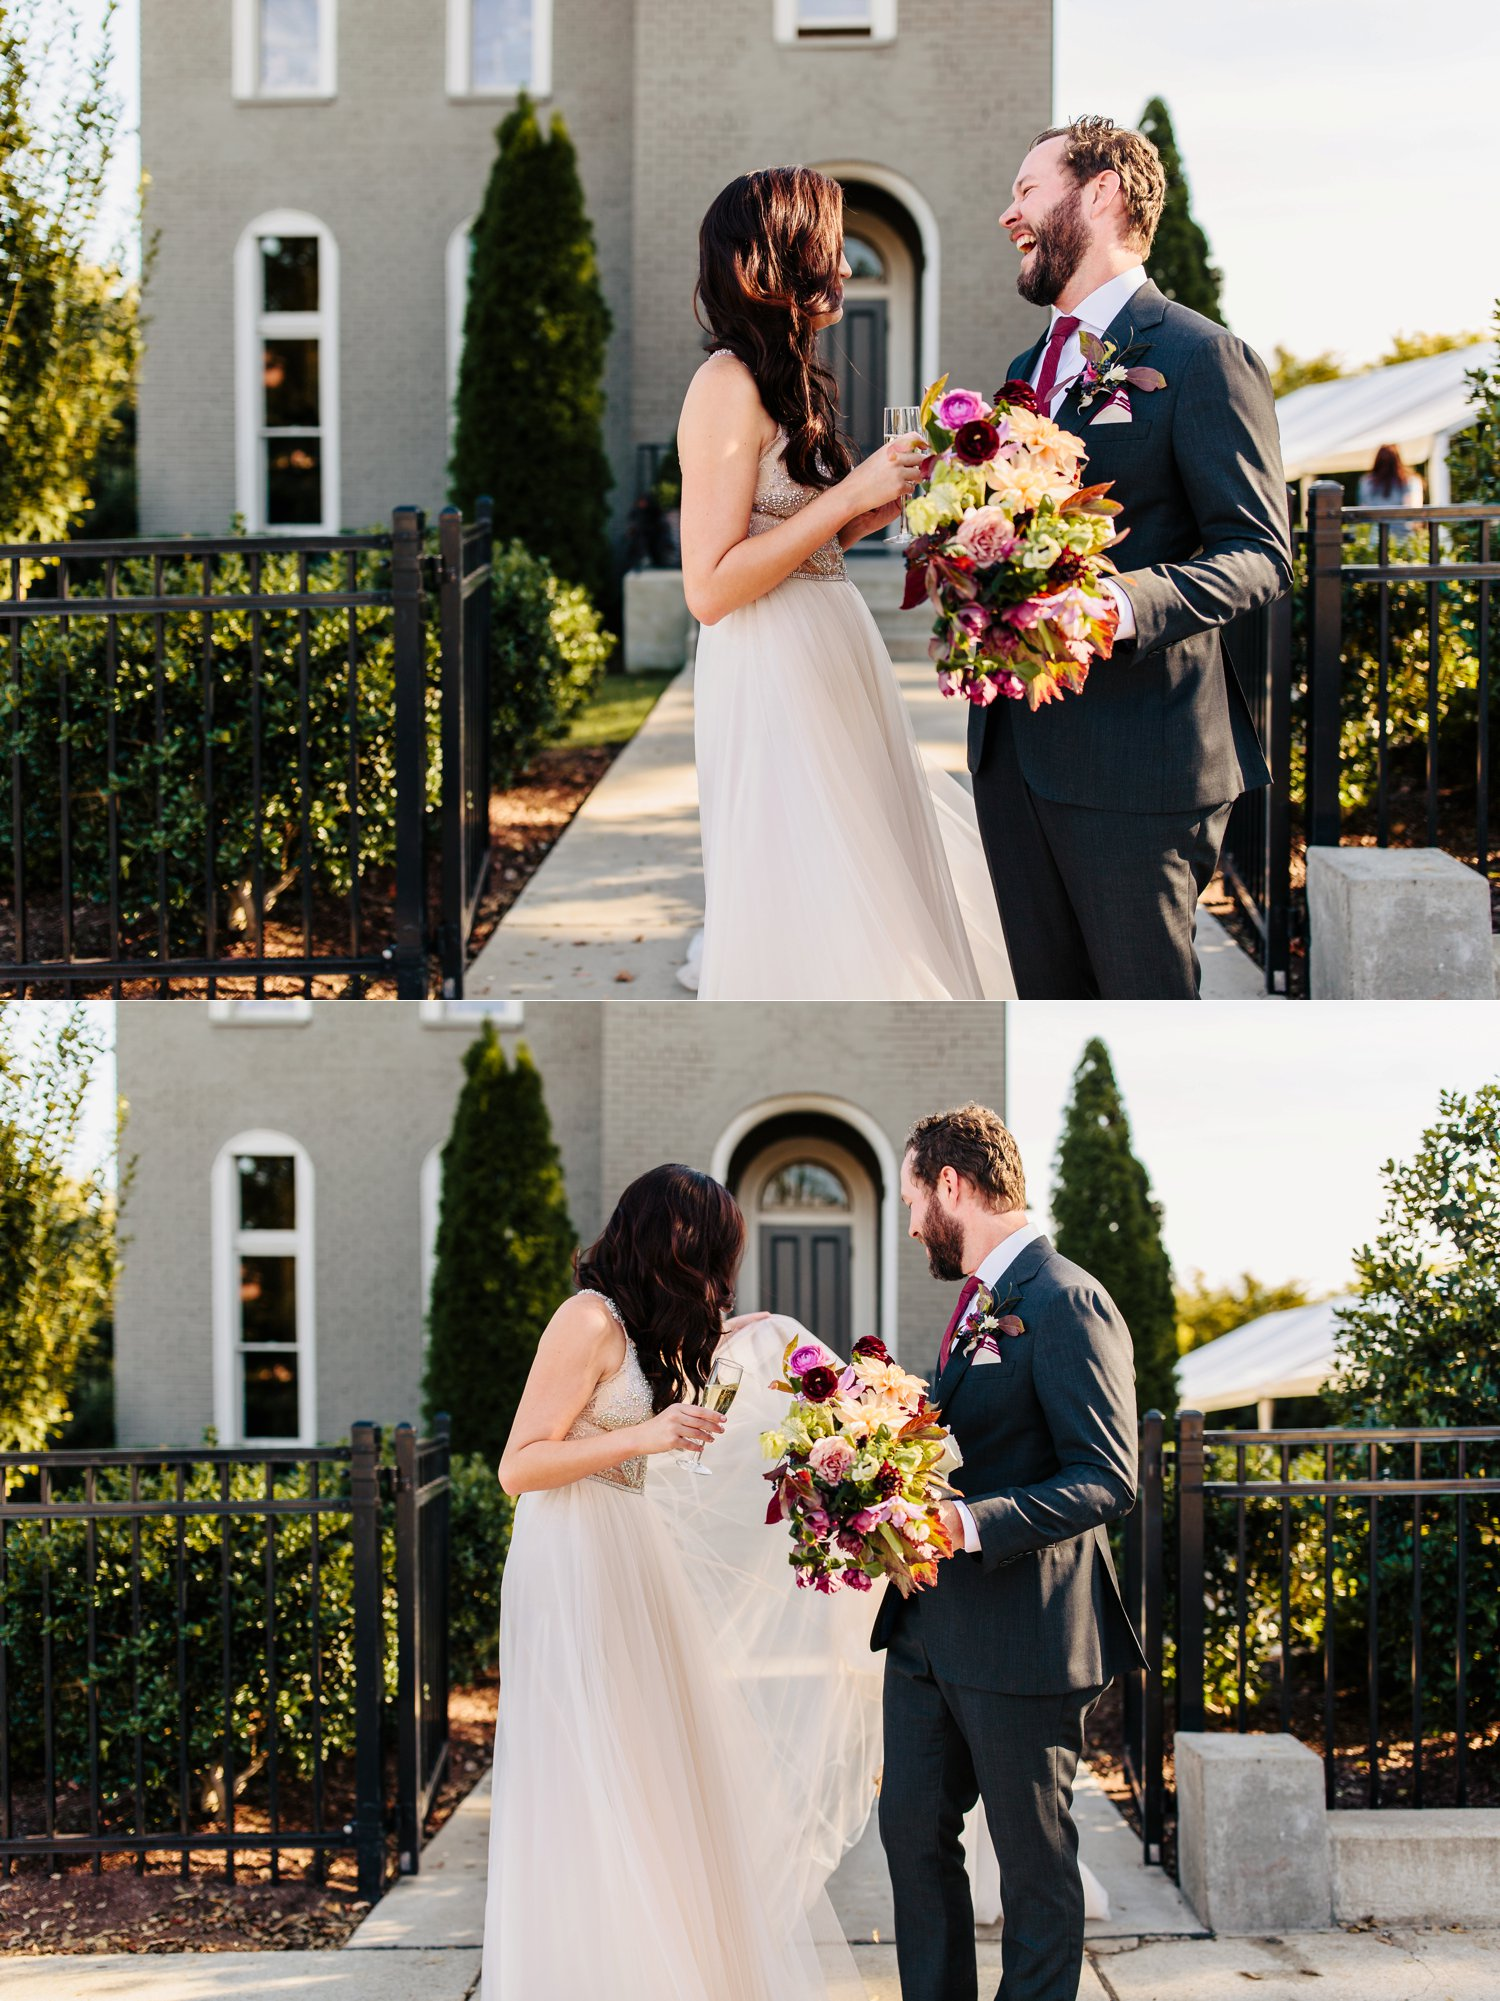 CK-Photo-Nashville-engagement-wedding-photographer-the-cordelle_0007.jpg